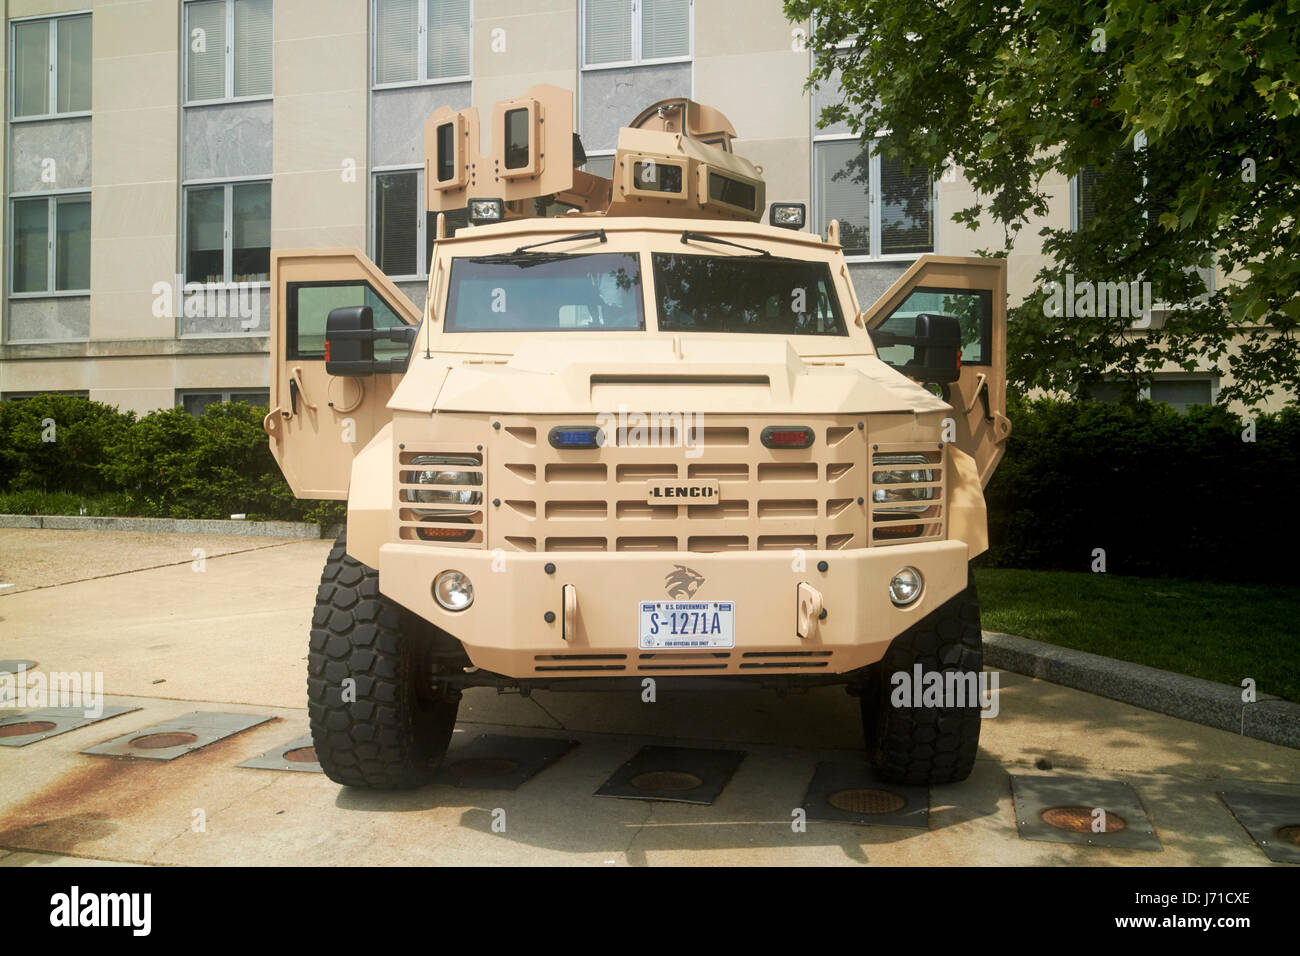 state department lenco bearcat g5 close private security detail armored personnel vehicle Washington DC USA - Stock Image